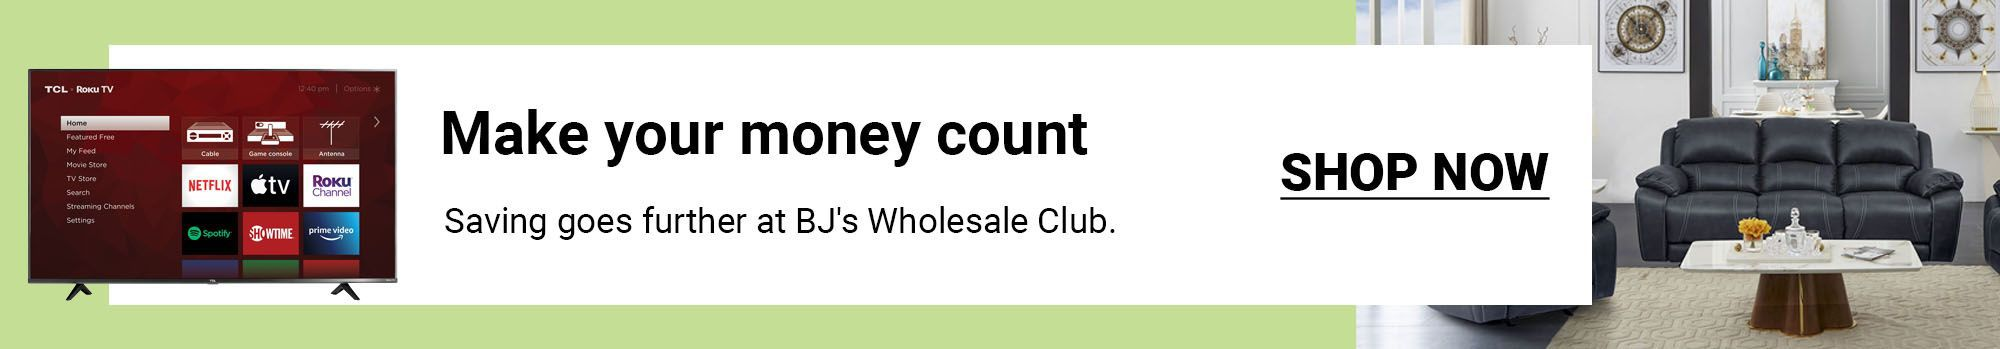 Make your money count. Saving goes further at BJ's Wholesale Club. Click to shop now.